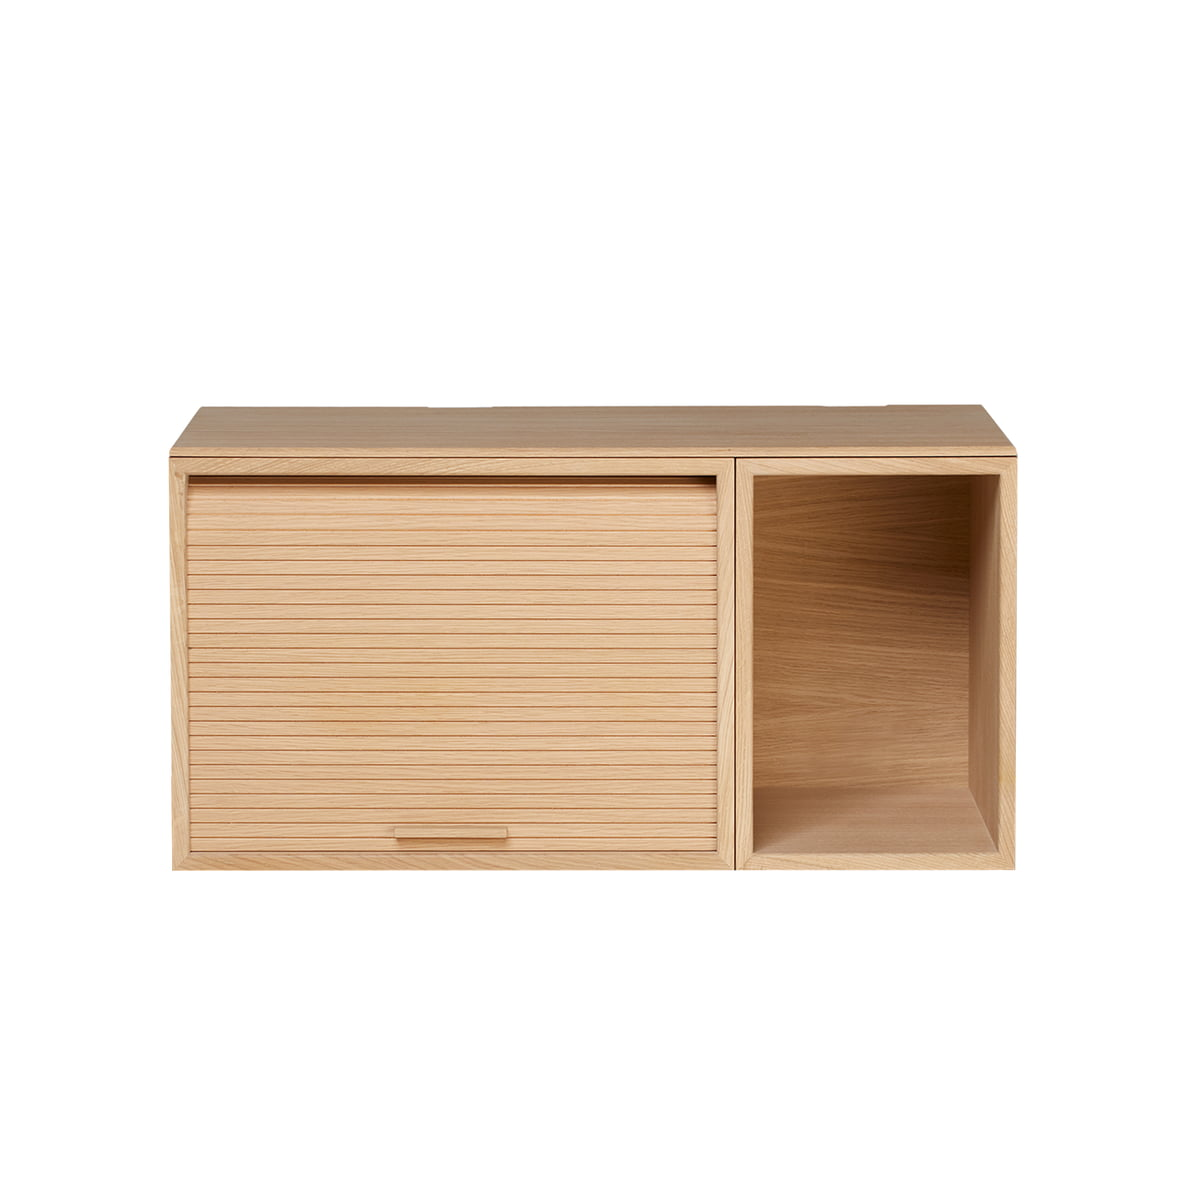 Hifive Wandschrank von Northern | Connox.at